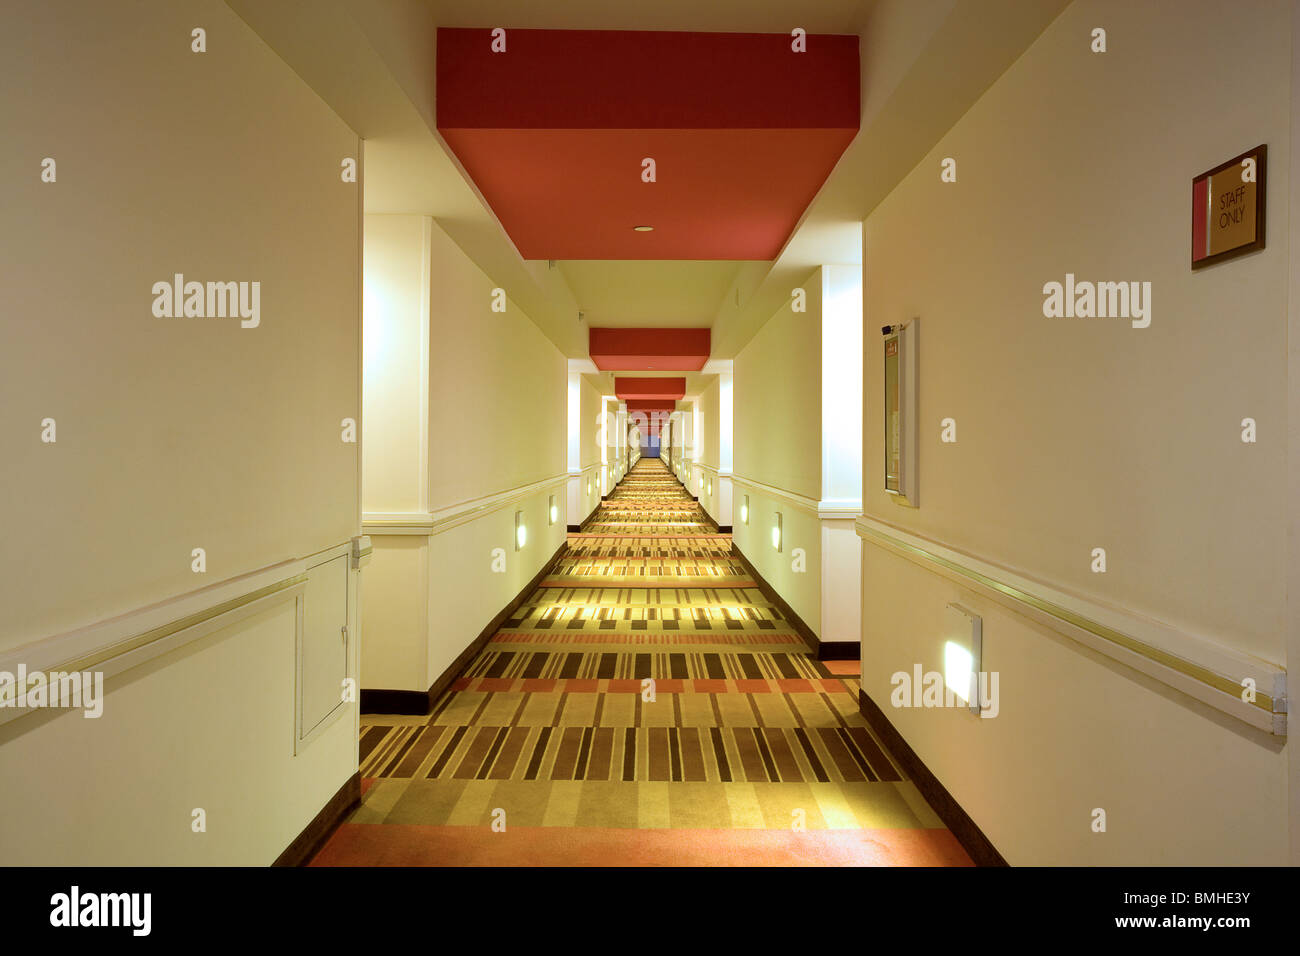 The corridor at the Flamingo Hotel Las Vegas - Stock Image